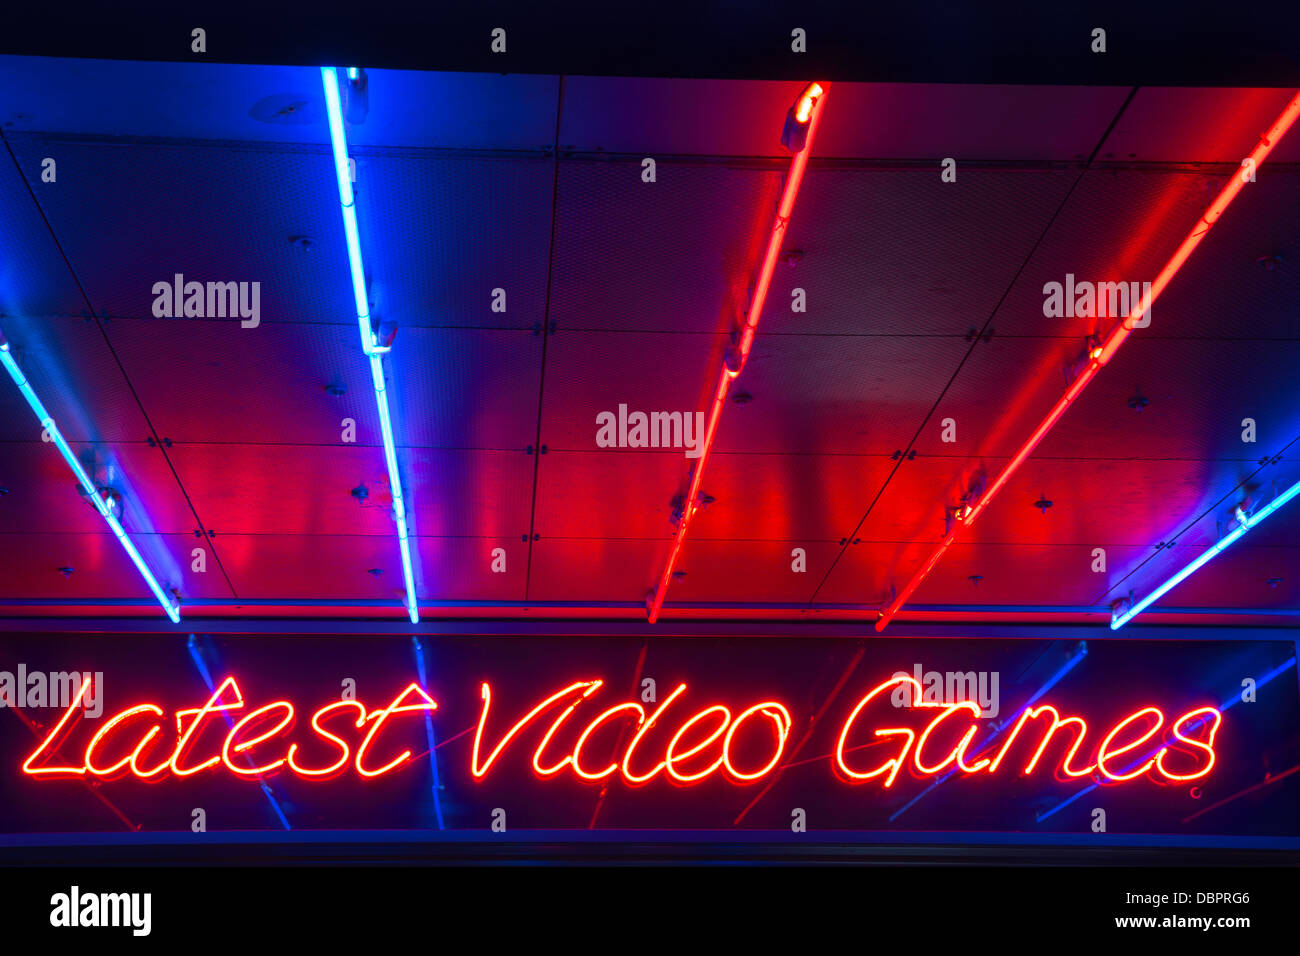 31/07/2013 Latest Video Games neon sign at Electric Avenue amusement arcade on the seafront in Southend-on-Sea - Stock Image